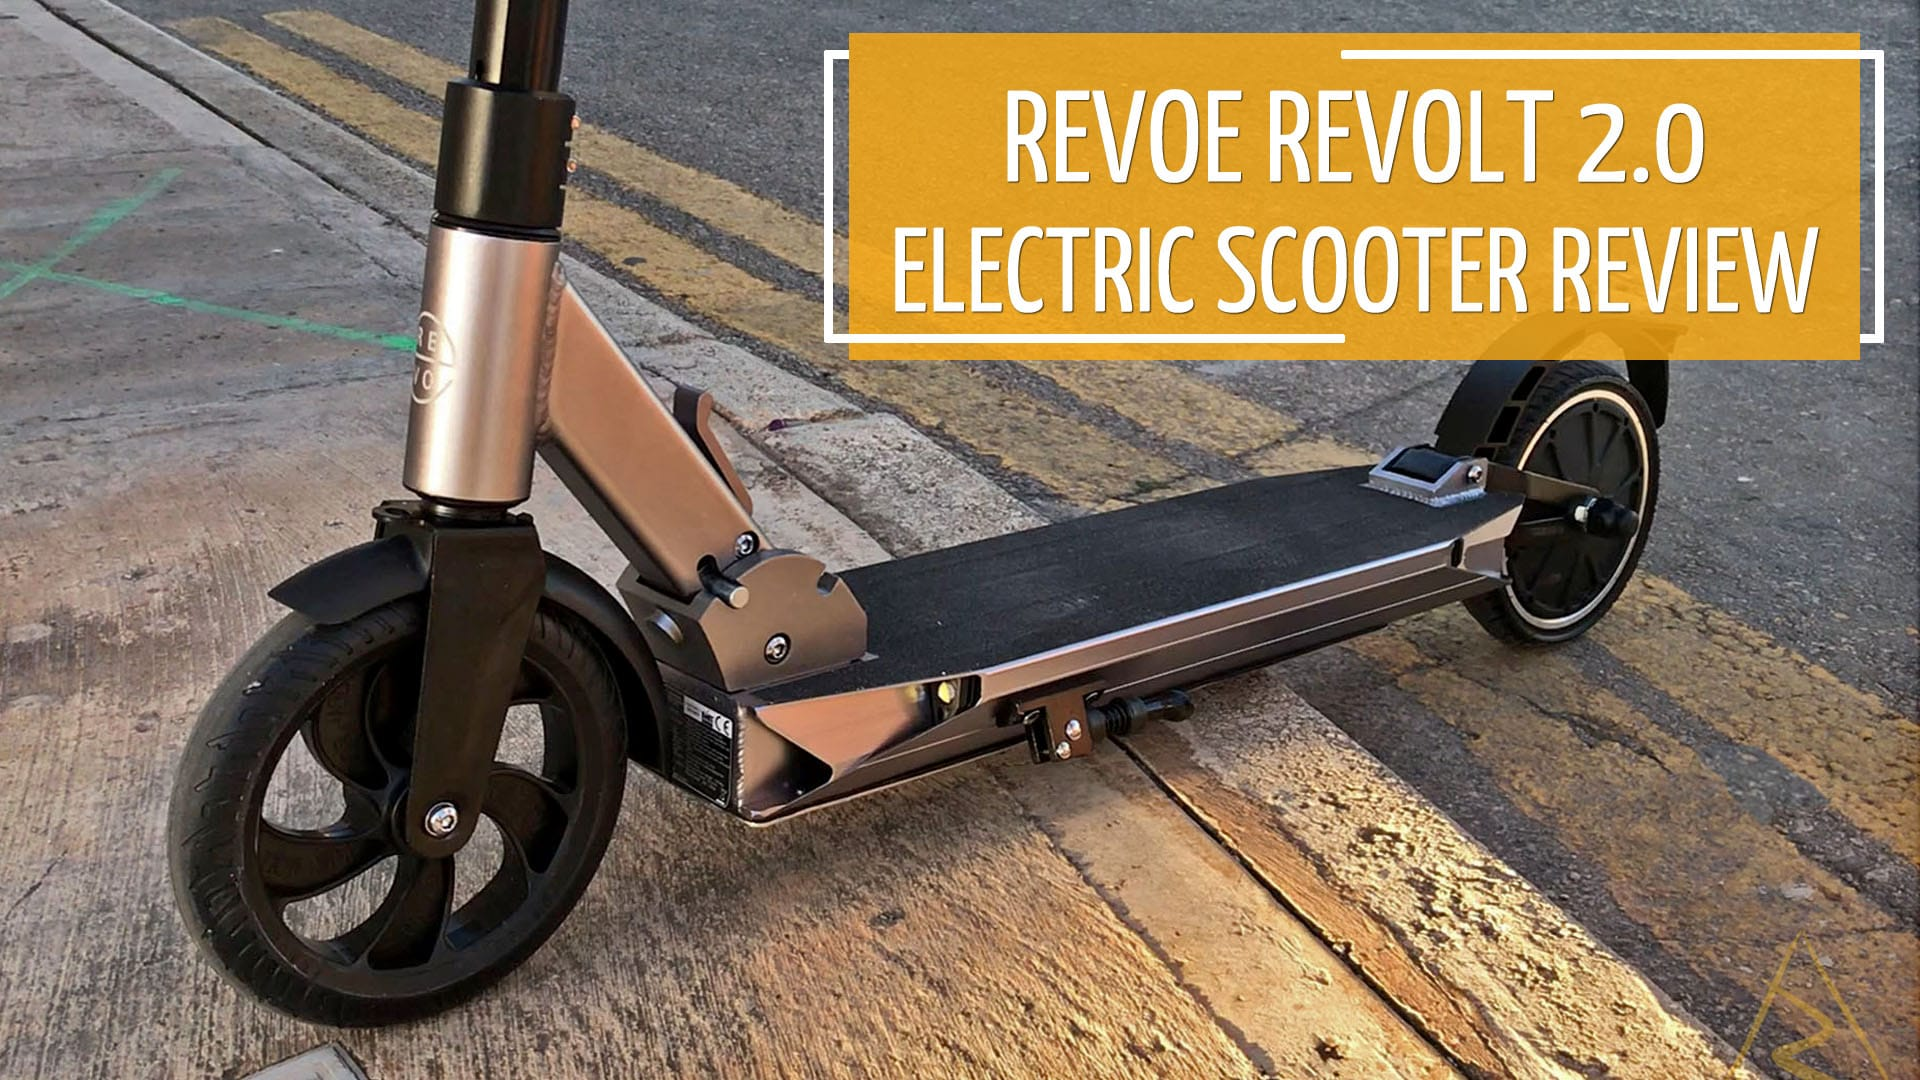 Revoe Revolt Electric Scooter Thumbnail